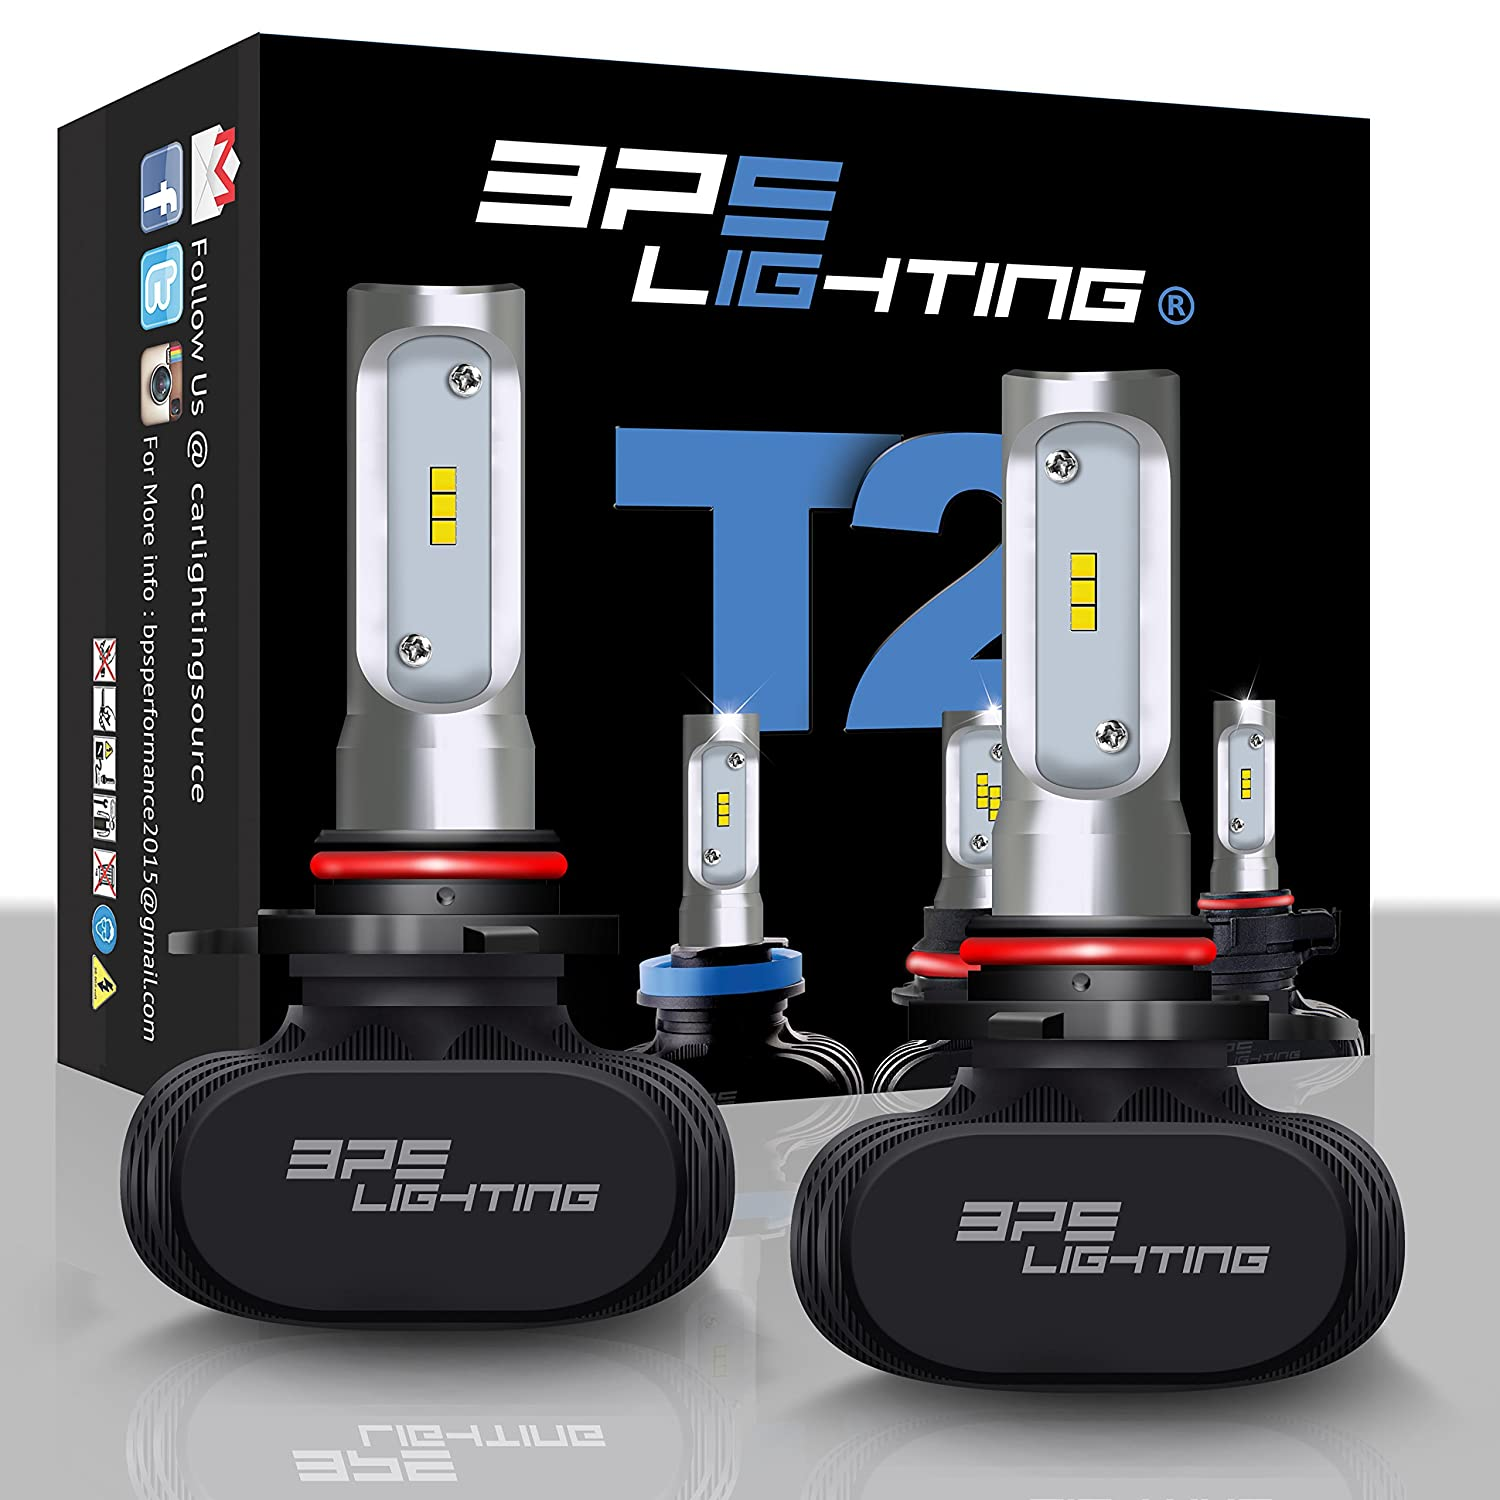 Super Bright Car and Truck Fog Light Beam BPS Lighting T2 LED Headlight Bulbs Conversion Kit 5202 50W 8000 Lumen 6000K 6500K Cool White Plug and Play All-in One